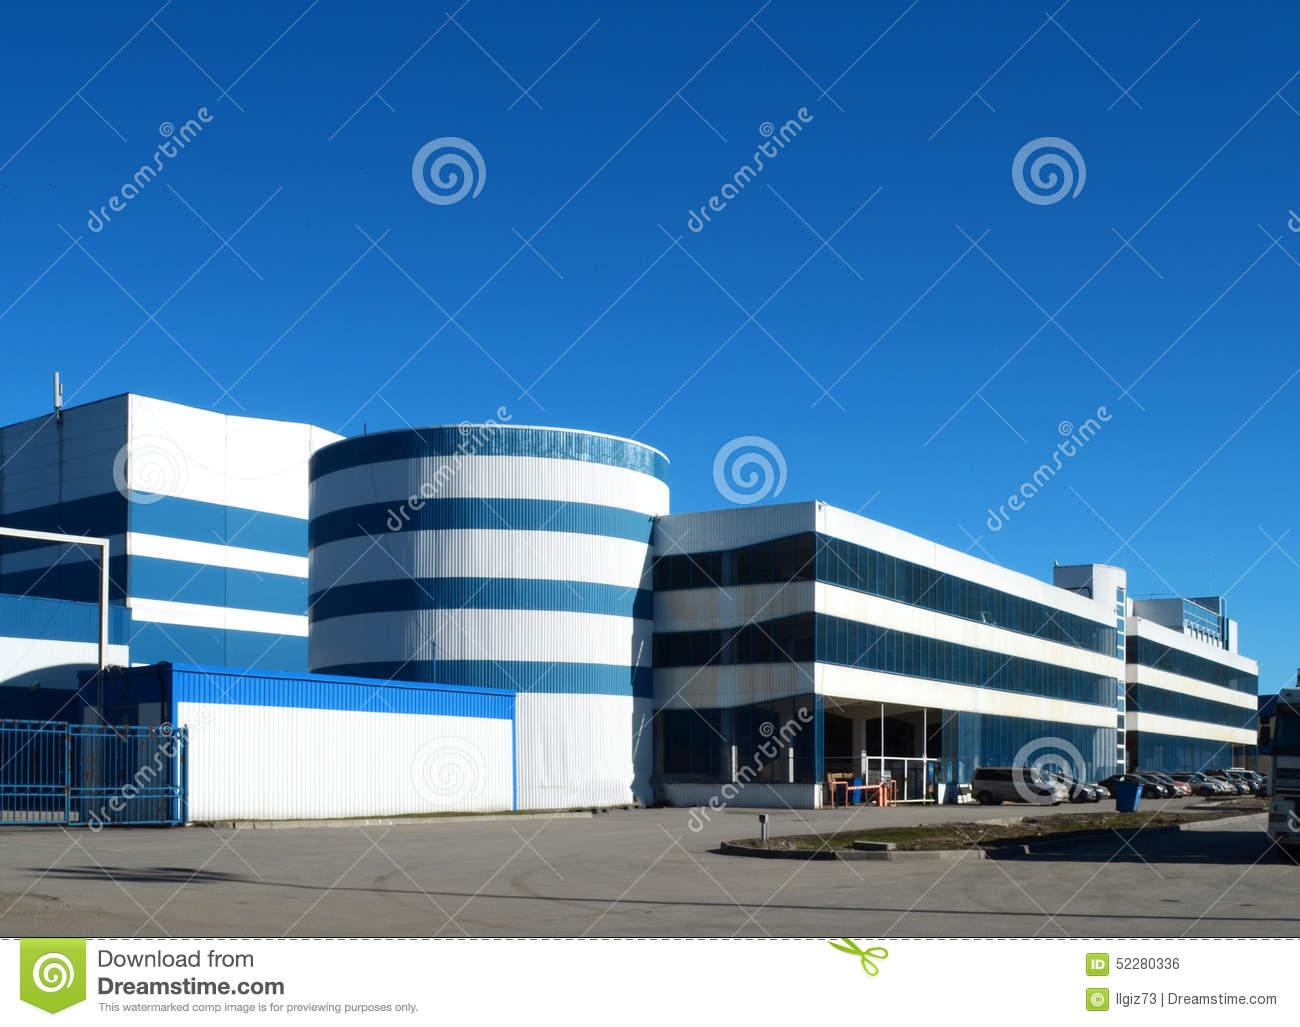 B timent industriel et moderne photo stock image 52280336 - Batiment industriel moderne ...